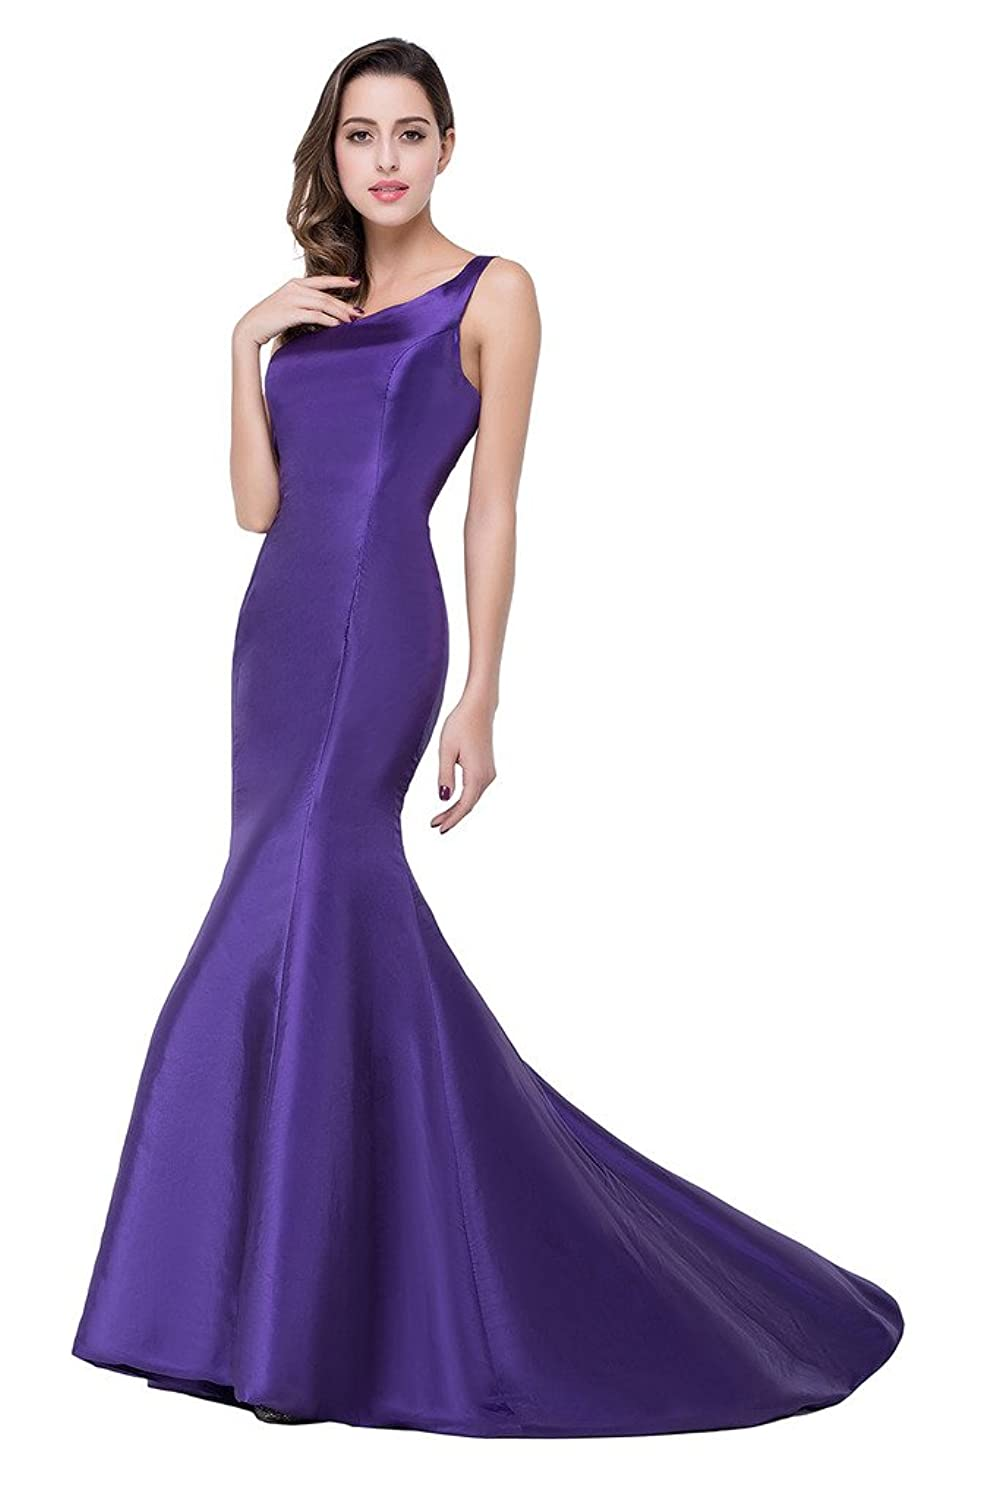 30%OFF Babyonline Elegant One Shoulder Long Mermaid Prom Dress For ...